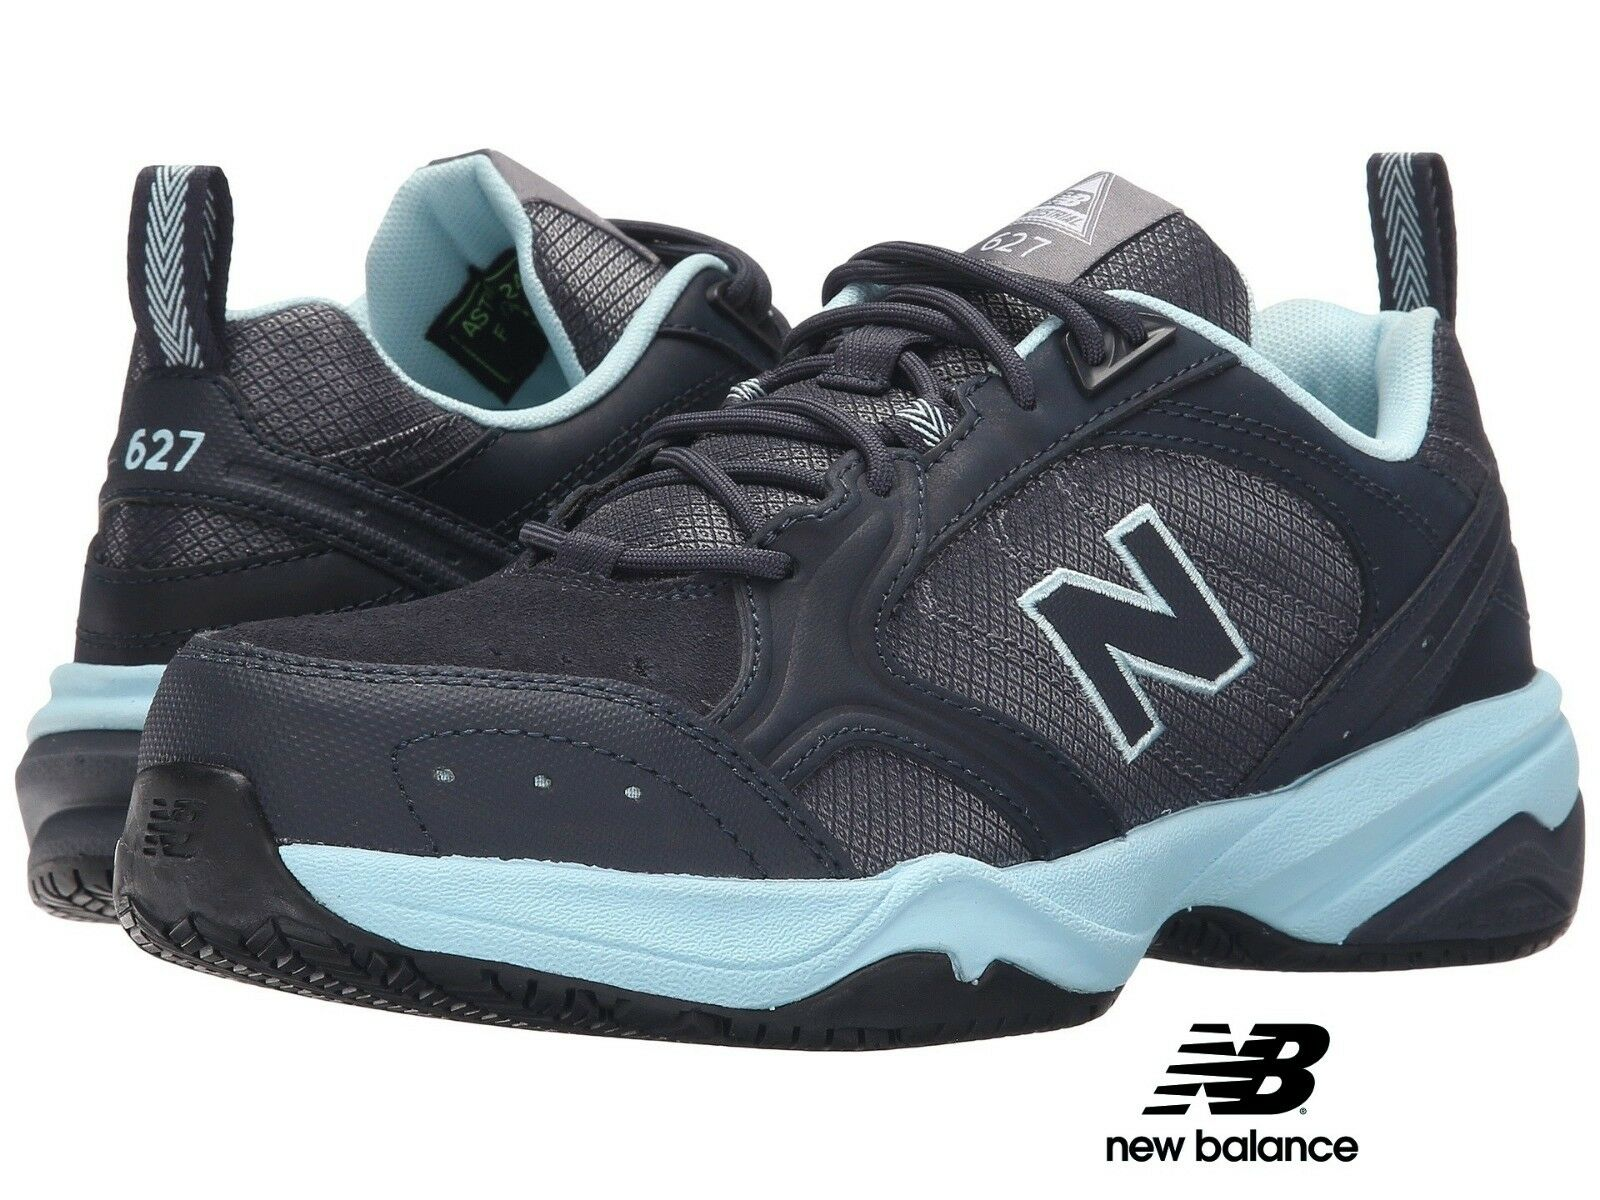 New Balance WID627GL Steel Toe Training Work shoes Women's Size 10.5 B NEW+BOX